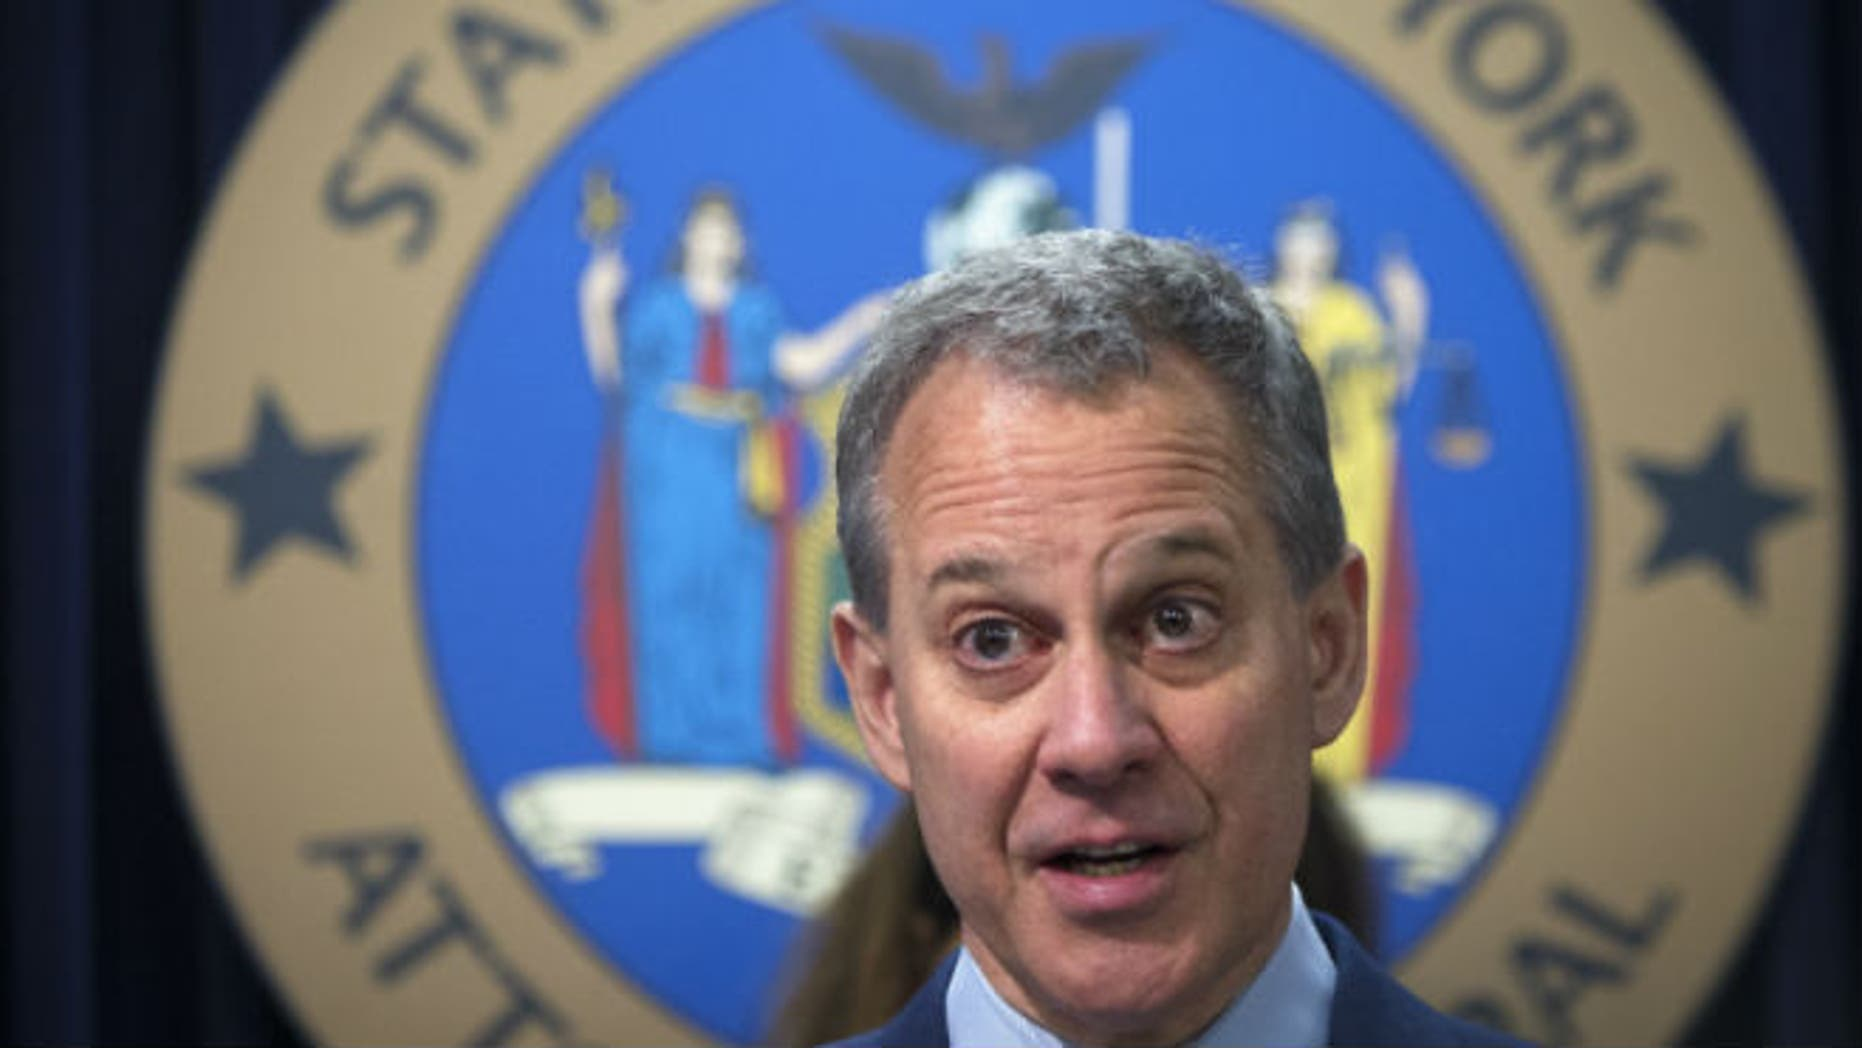 New York State Attorney General Eric Schneiderman speaks during a news conference in the Manhattan borough of New York in this file photo dated August 21, 2014. REUTERS/CARLO ALLEGRI